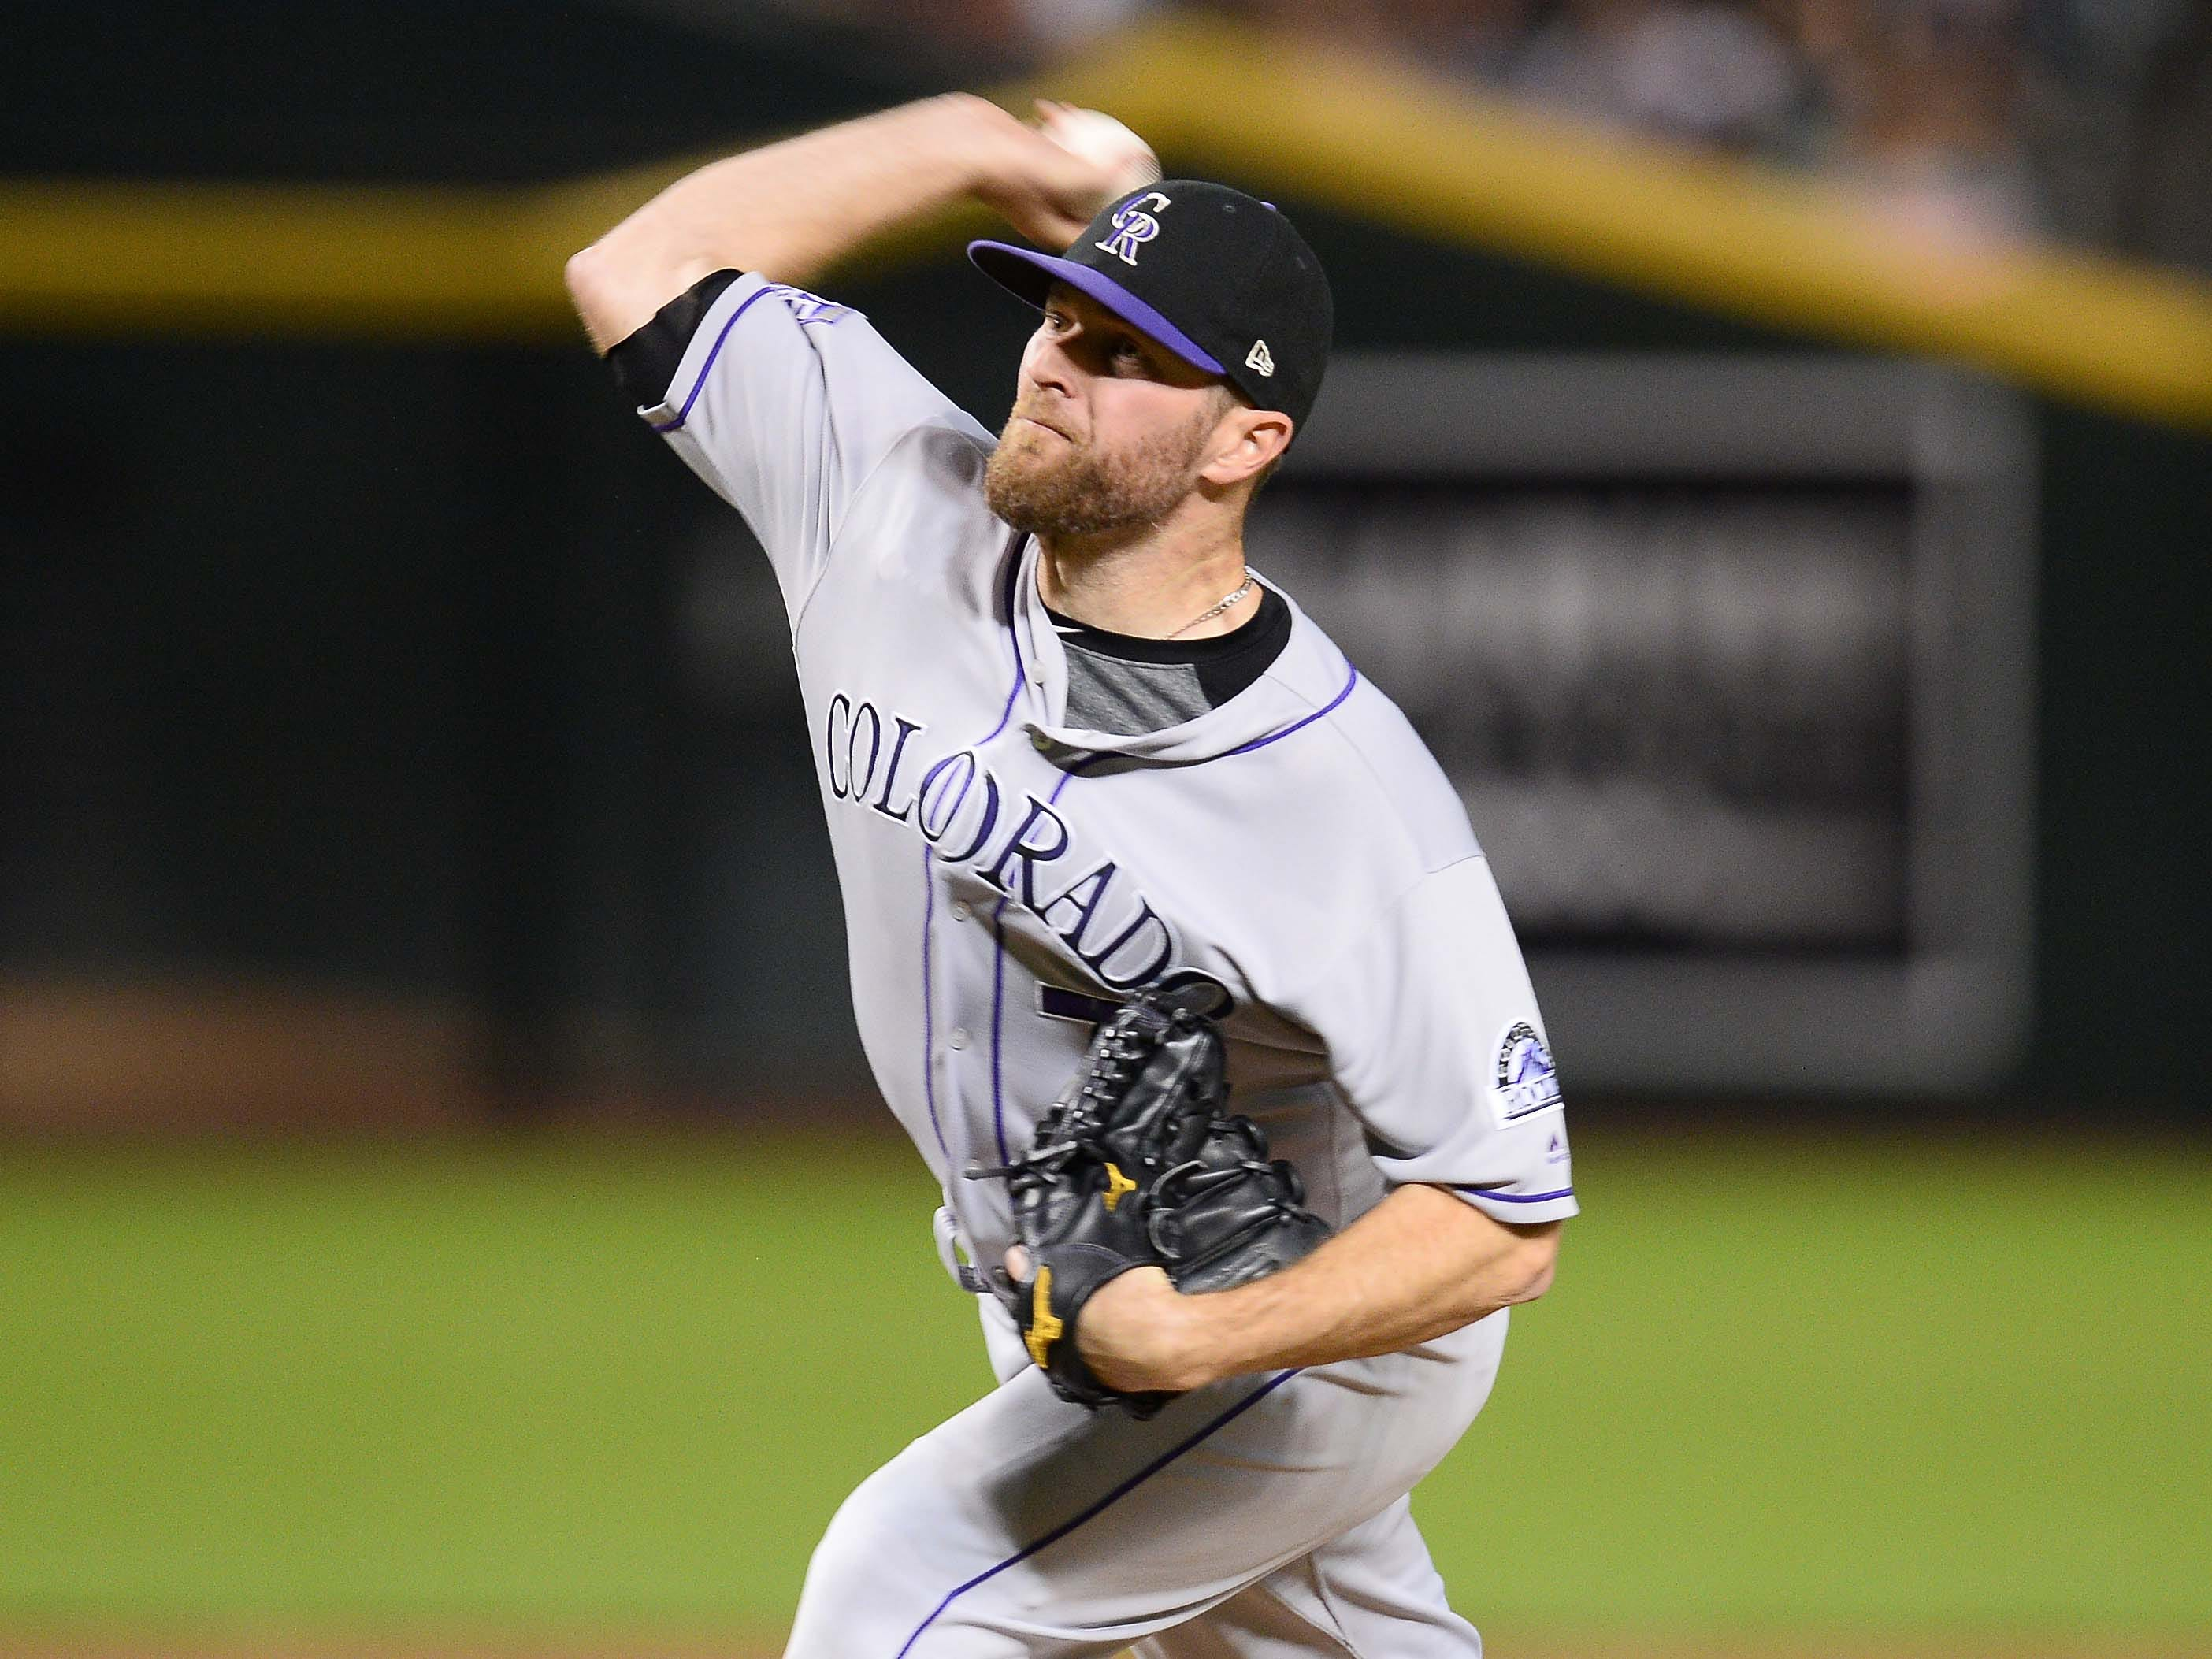 Sep 22, 2018; Phoenix, AZ, USA; Colorado Rockies relief pitcher Wade Davis (71) pitches against the Arizona Diamondbacks during the ninth inning at Chase Field.